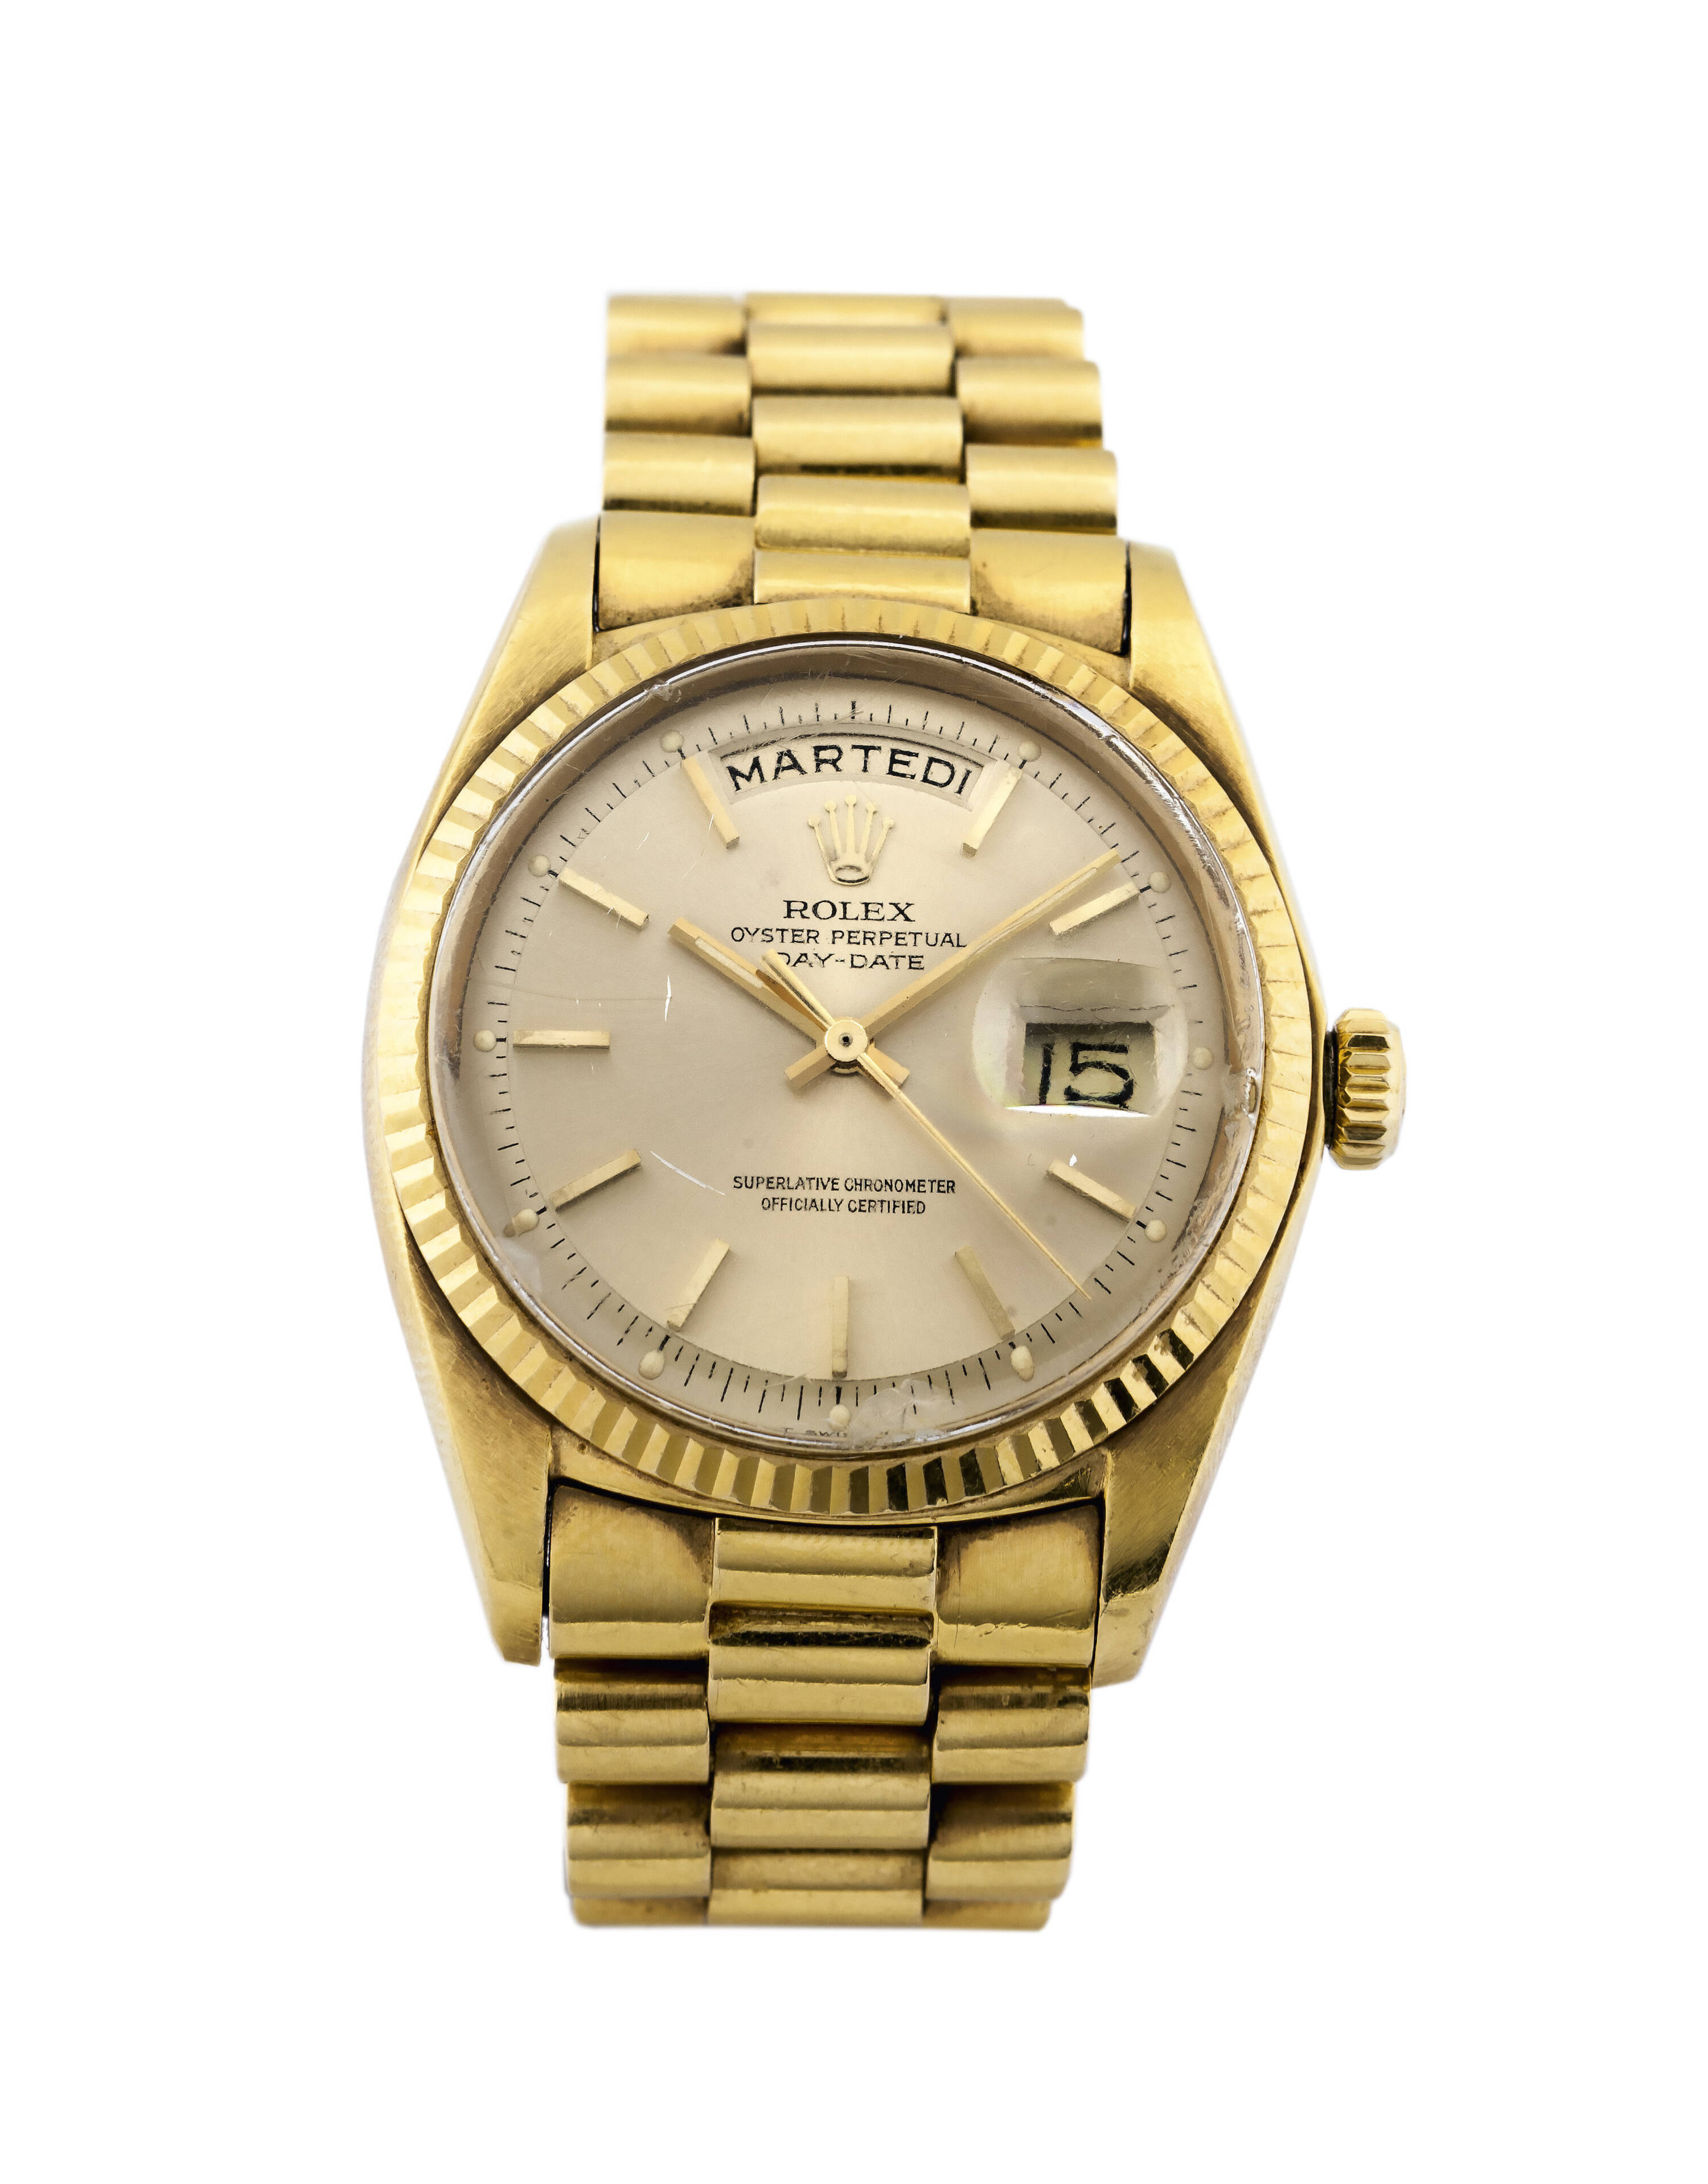 ROLEX - Oyster Perpetual Day Date, ref. 1803, 1971